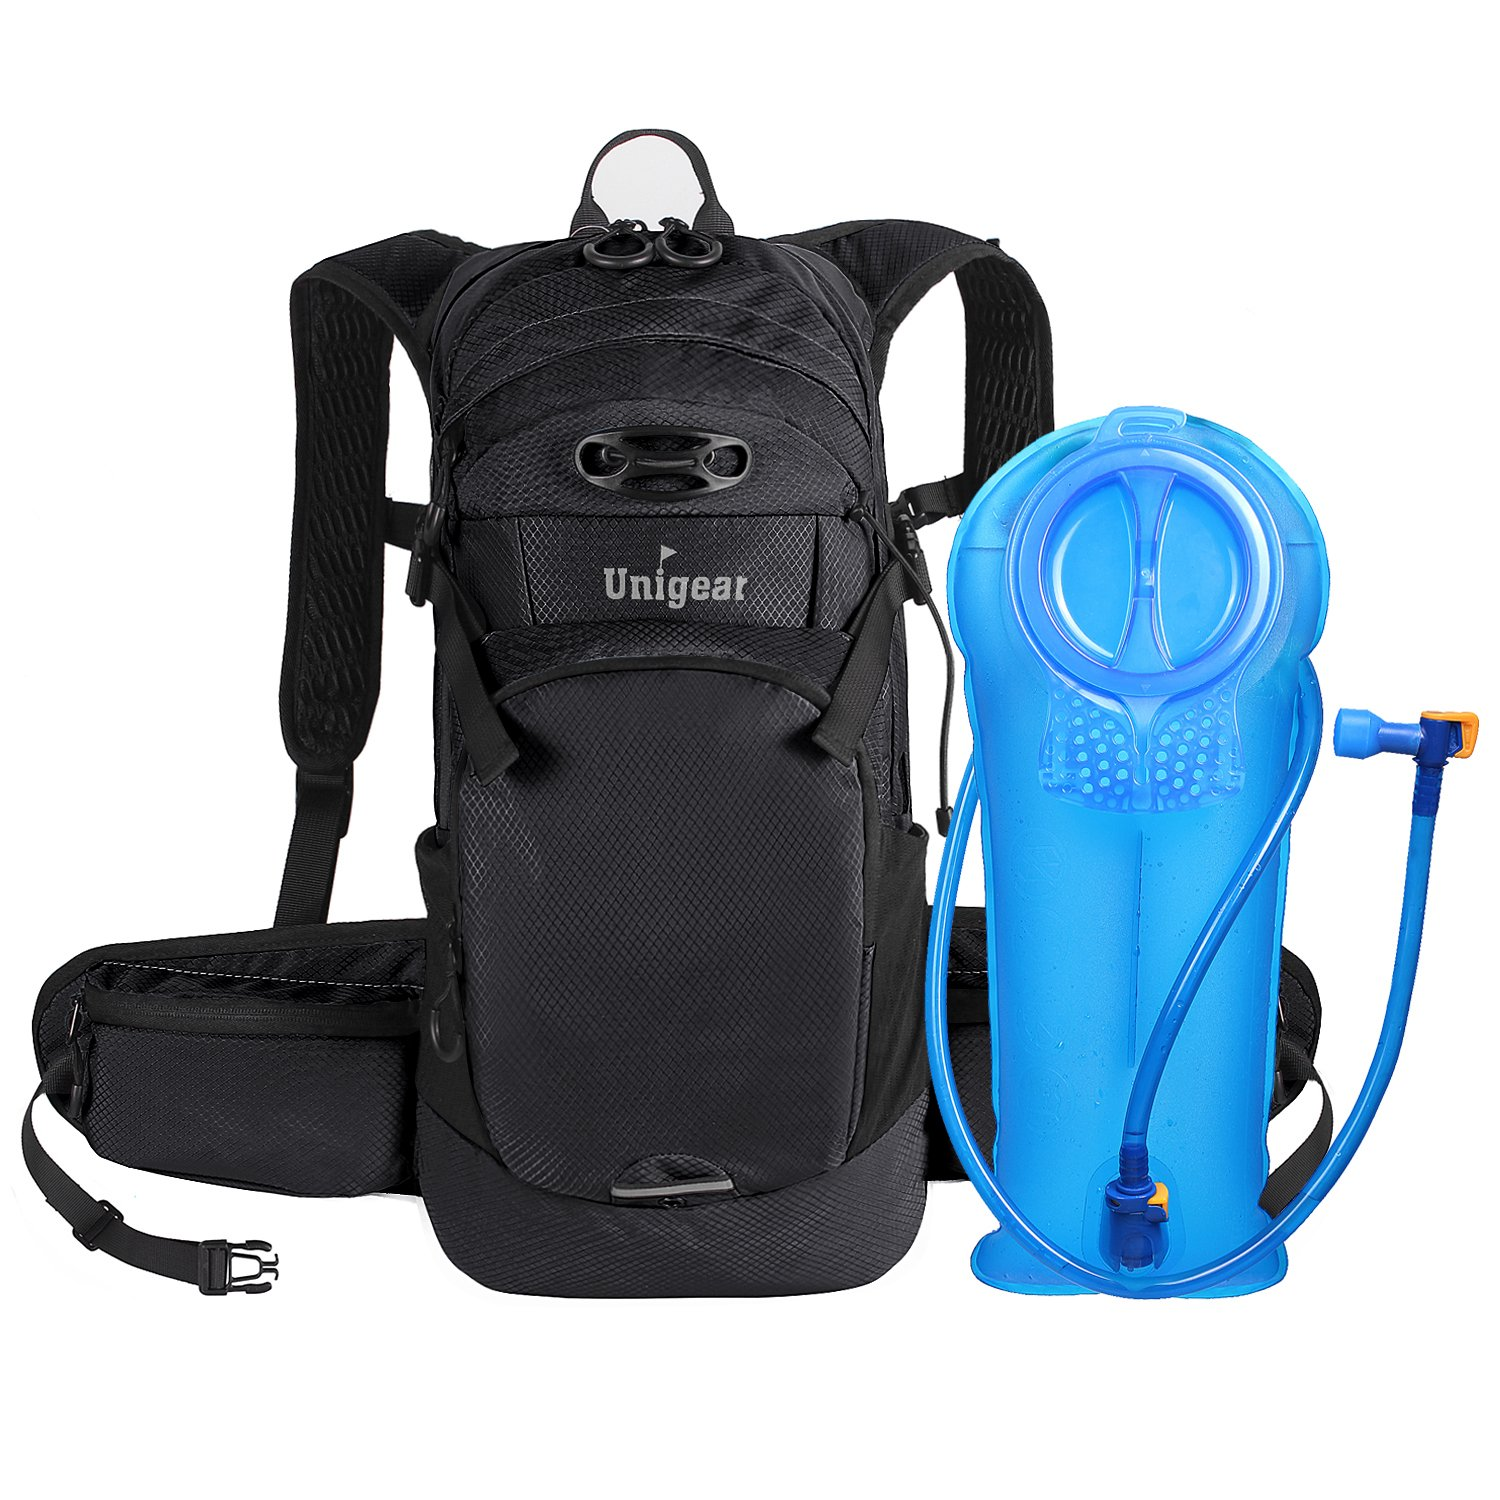 Unigear Hydration Packs Backpack with 2L TPU Water Bladder Reservoir, Thermal Insulation Pack Keeps Liquid Cool up to 4 Hours for Running, Hiking, Climbing, Cycling (Blackout)